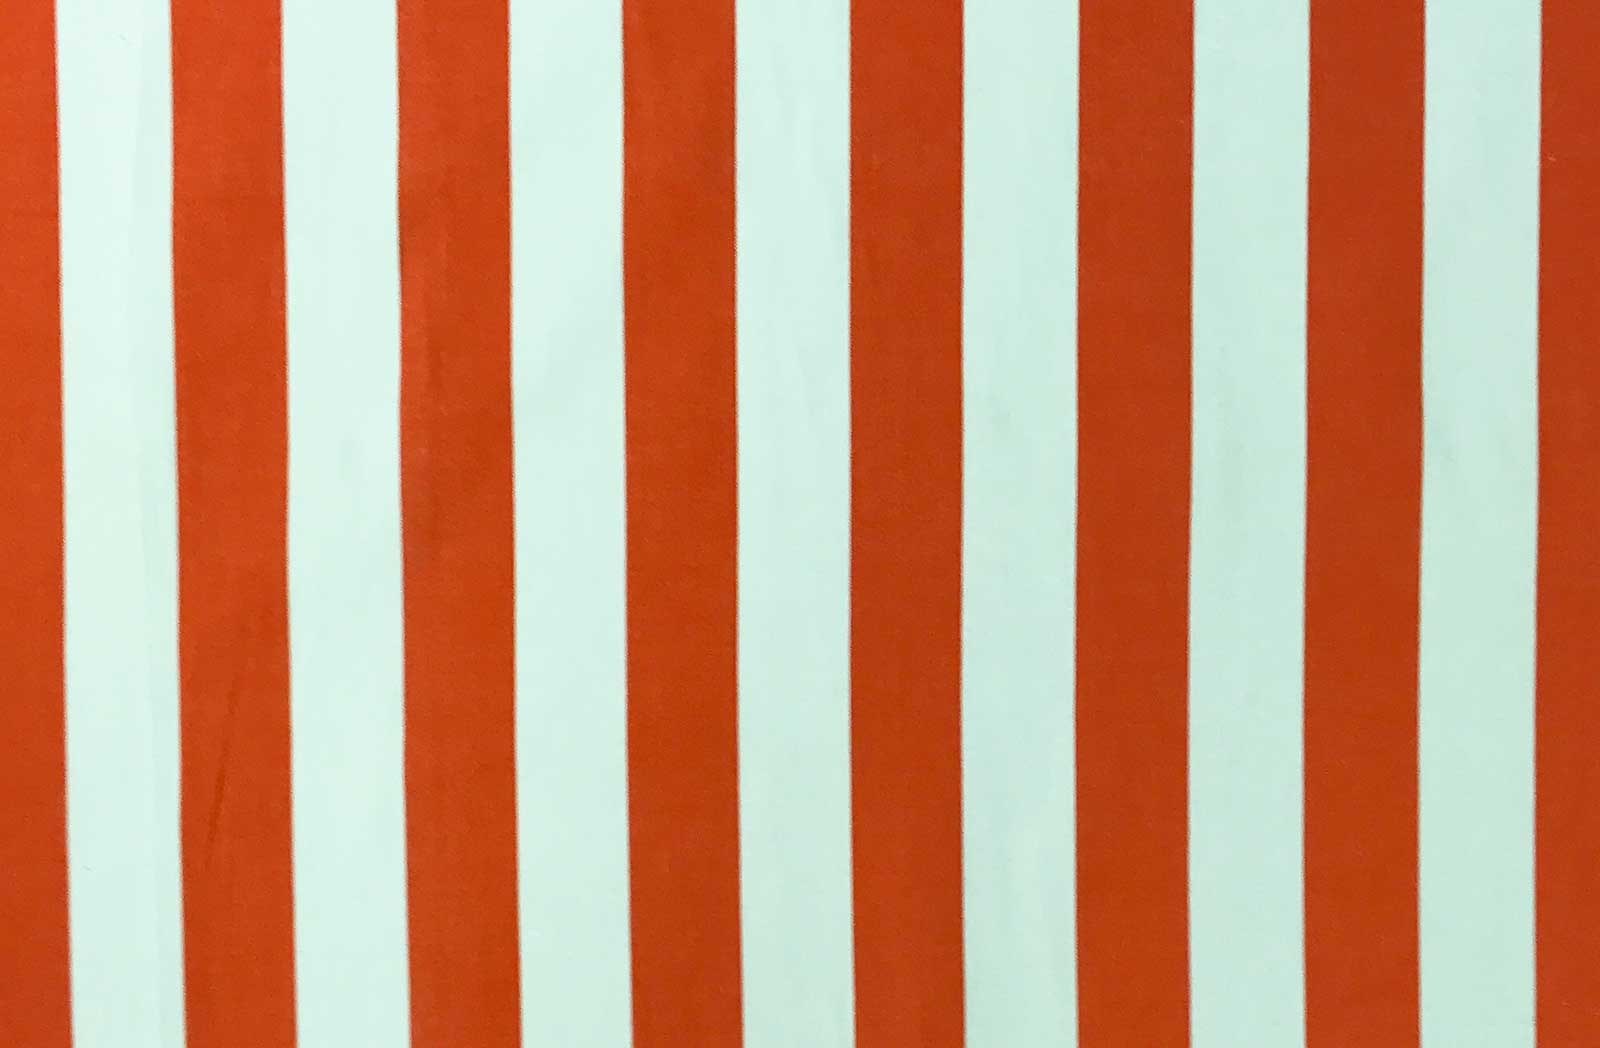 orange white- Striped Fabrics | Stripe Cotton Fabrics | Striped Curtain Fabrics | Upholstery Fabrics